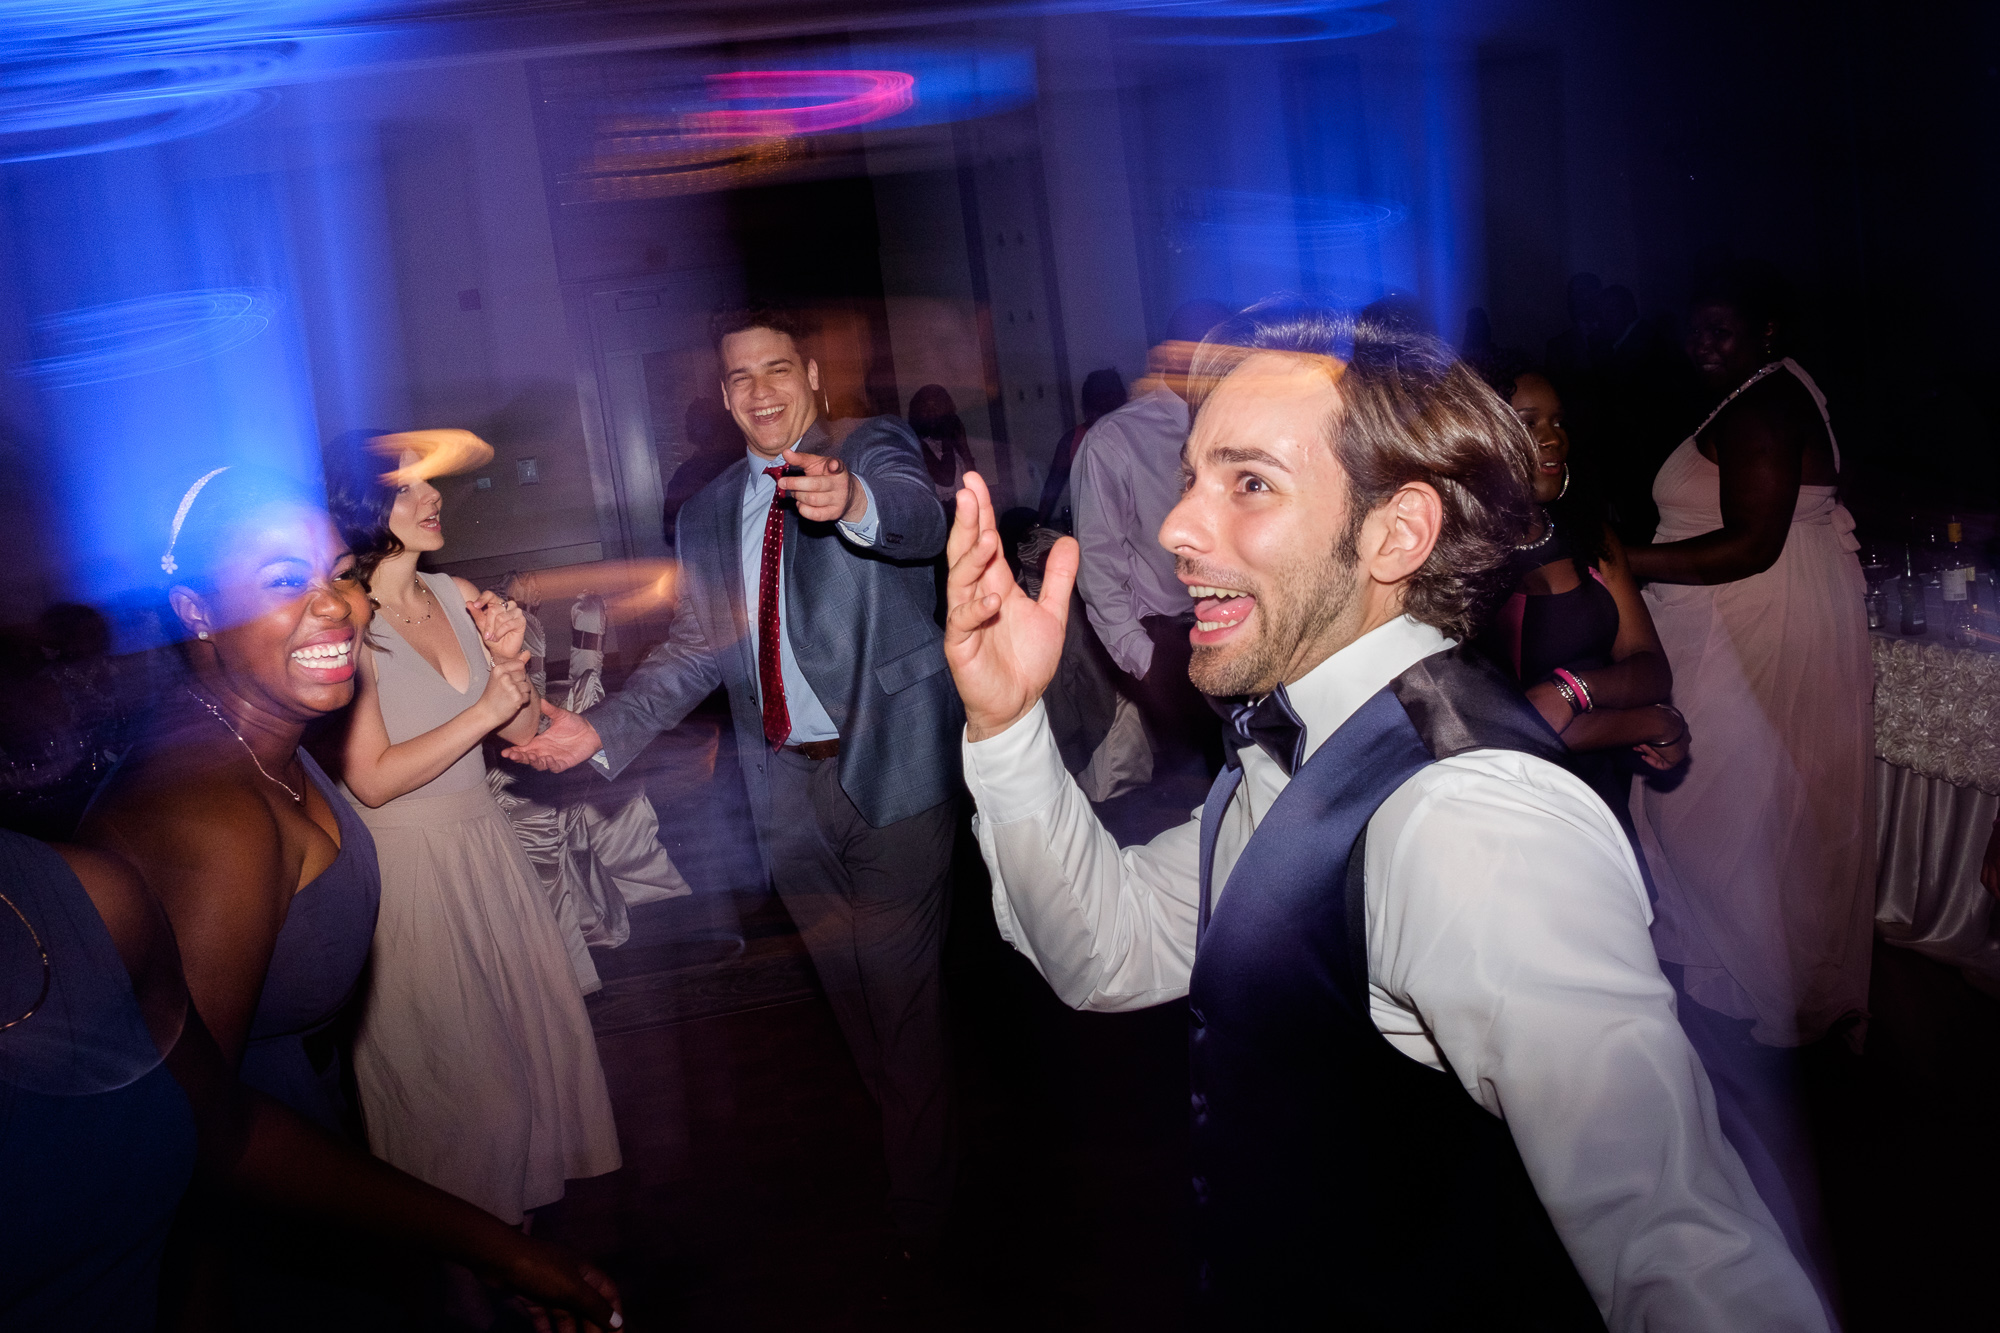 Guests party away during the reception at Jennifer + Alex Toronto wedding.